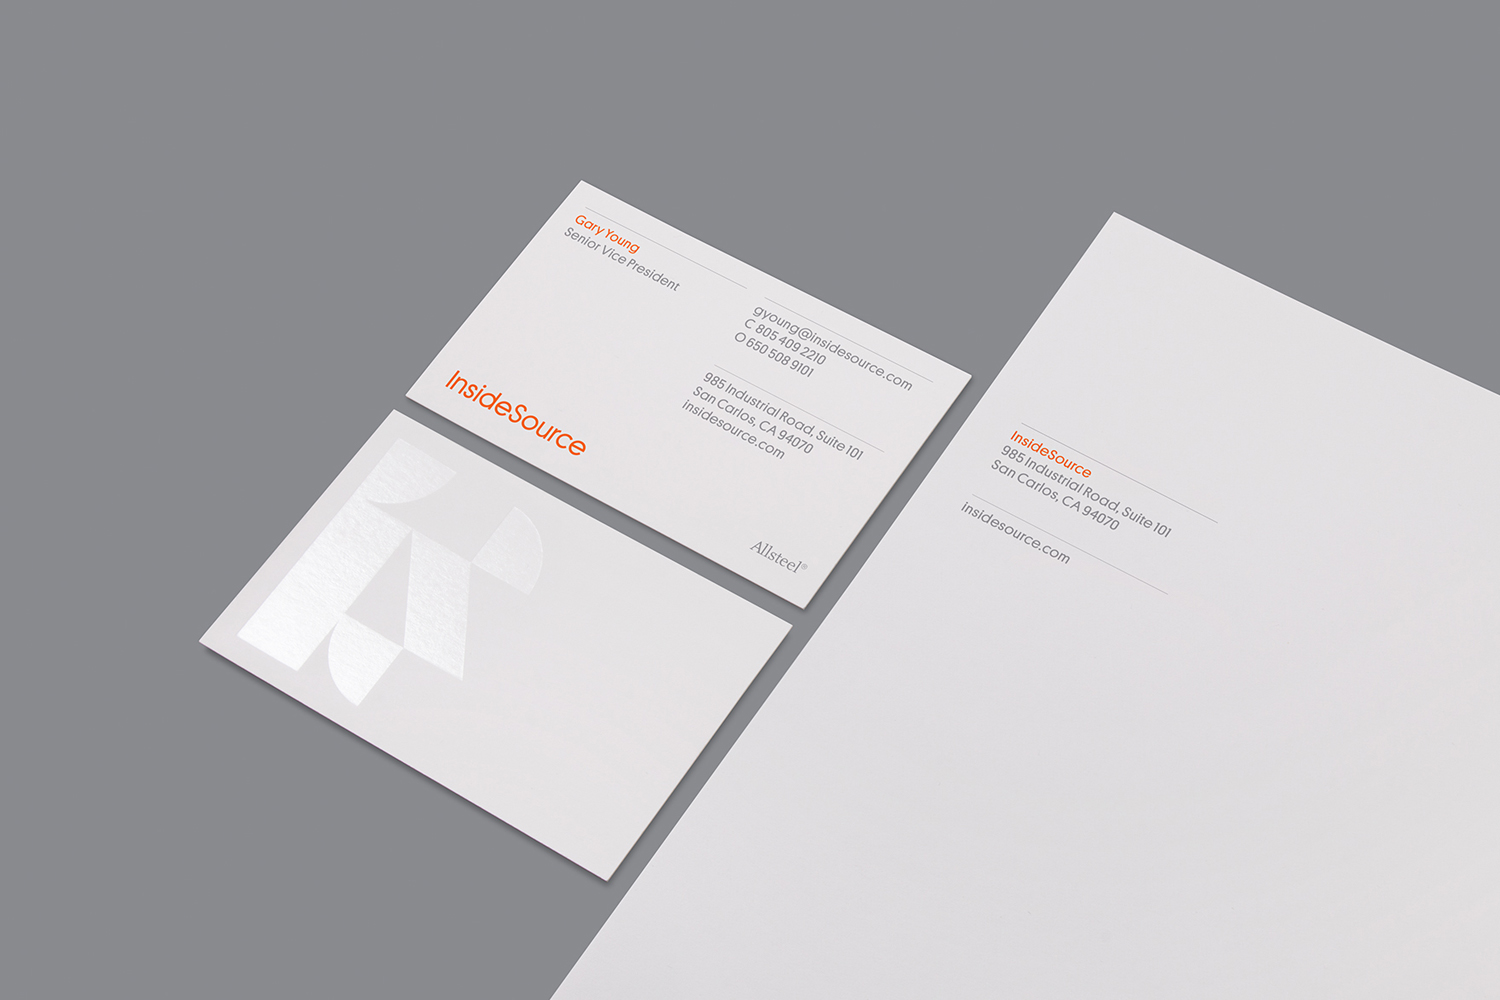 Brand identity by Mucho for office space planning, design and project management company Inside Source